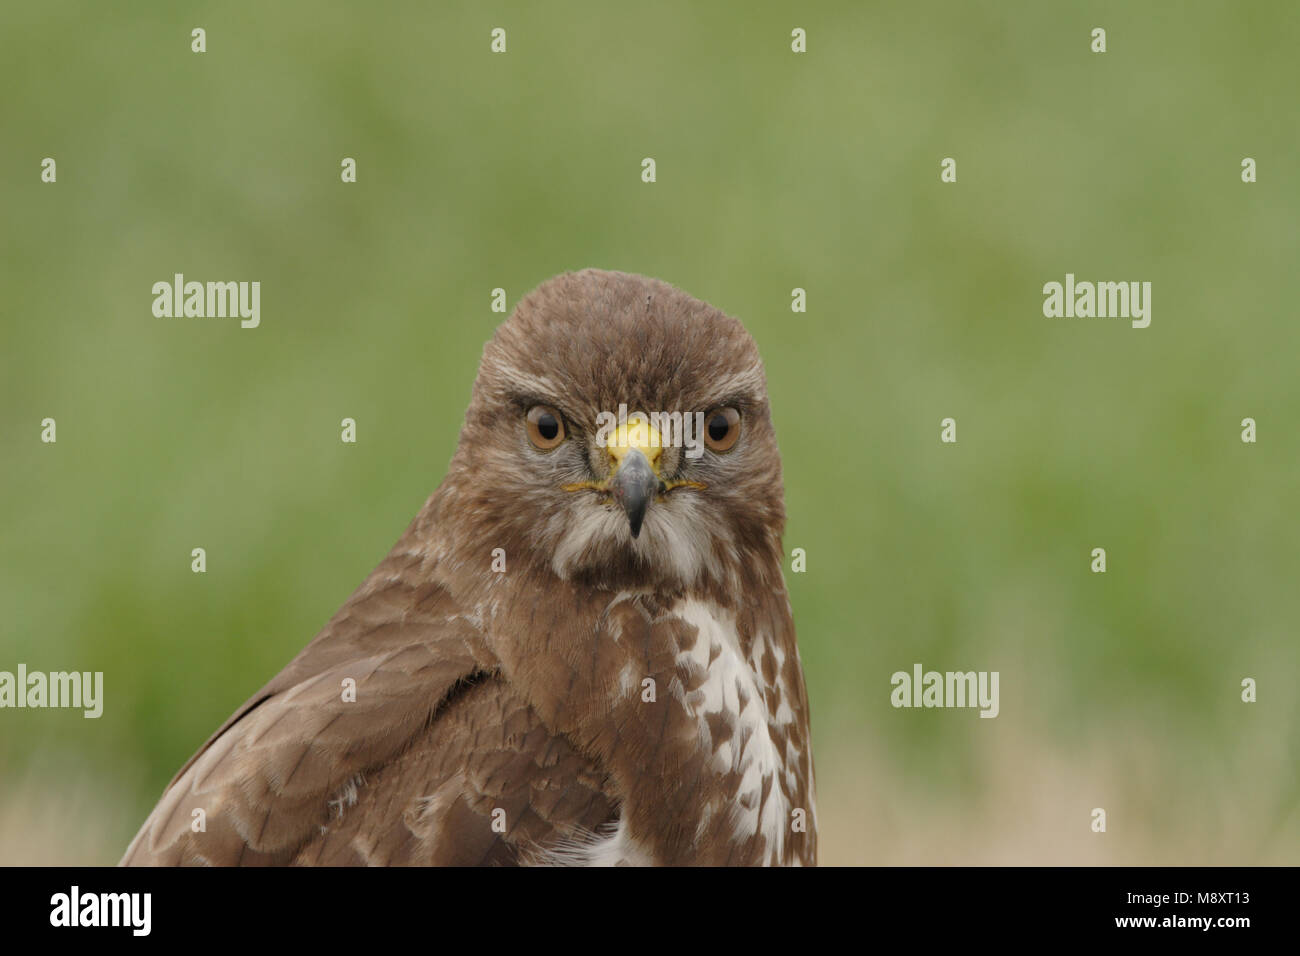 Buizerd portret; comune poiana close-up Immagini Stock